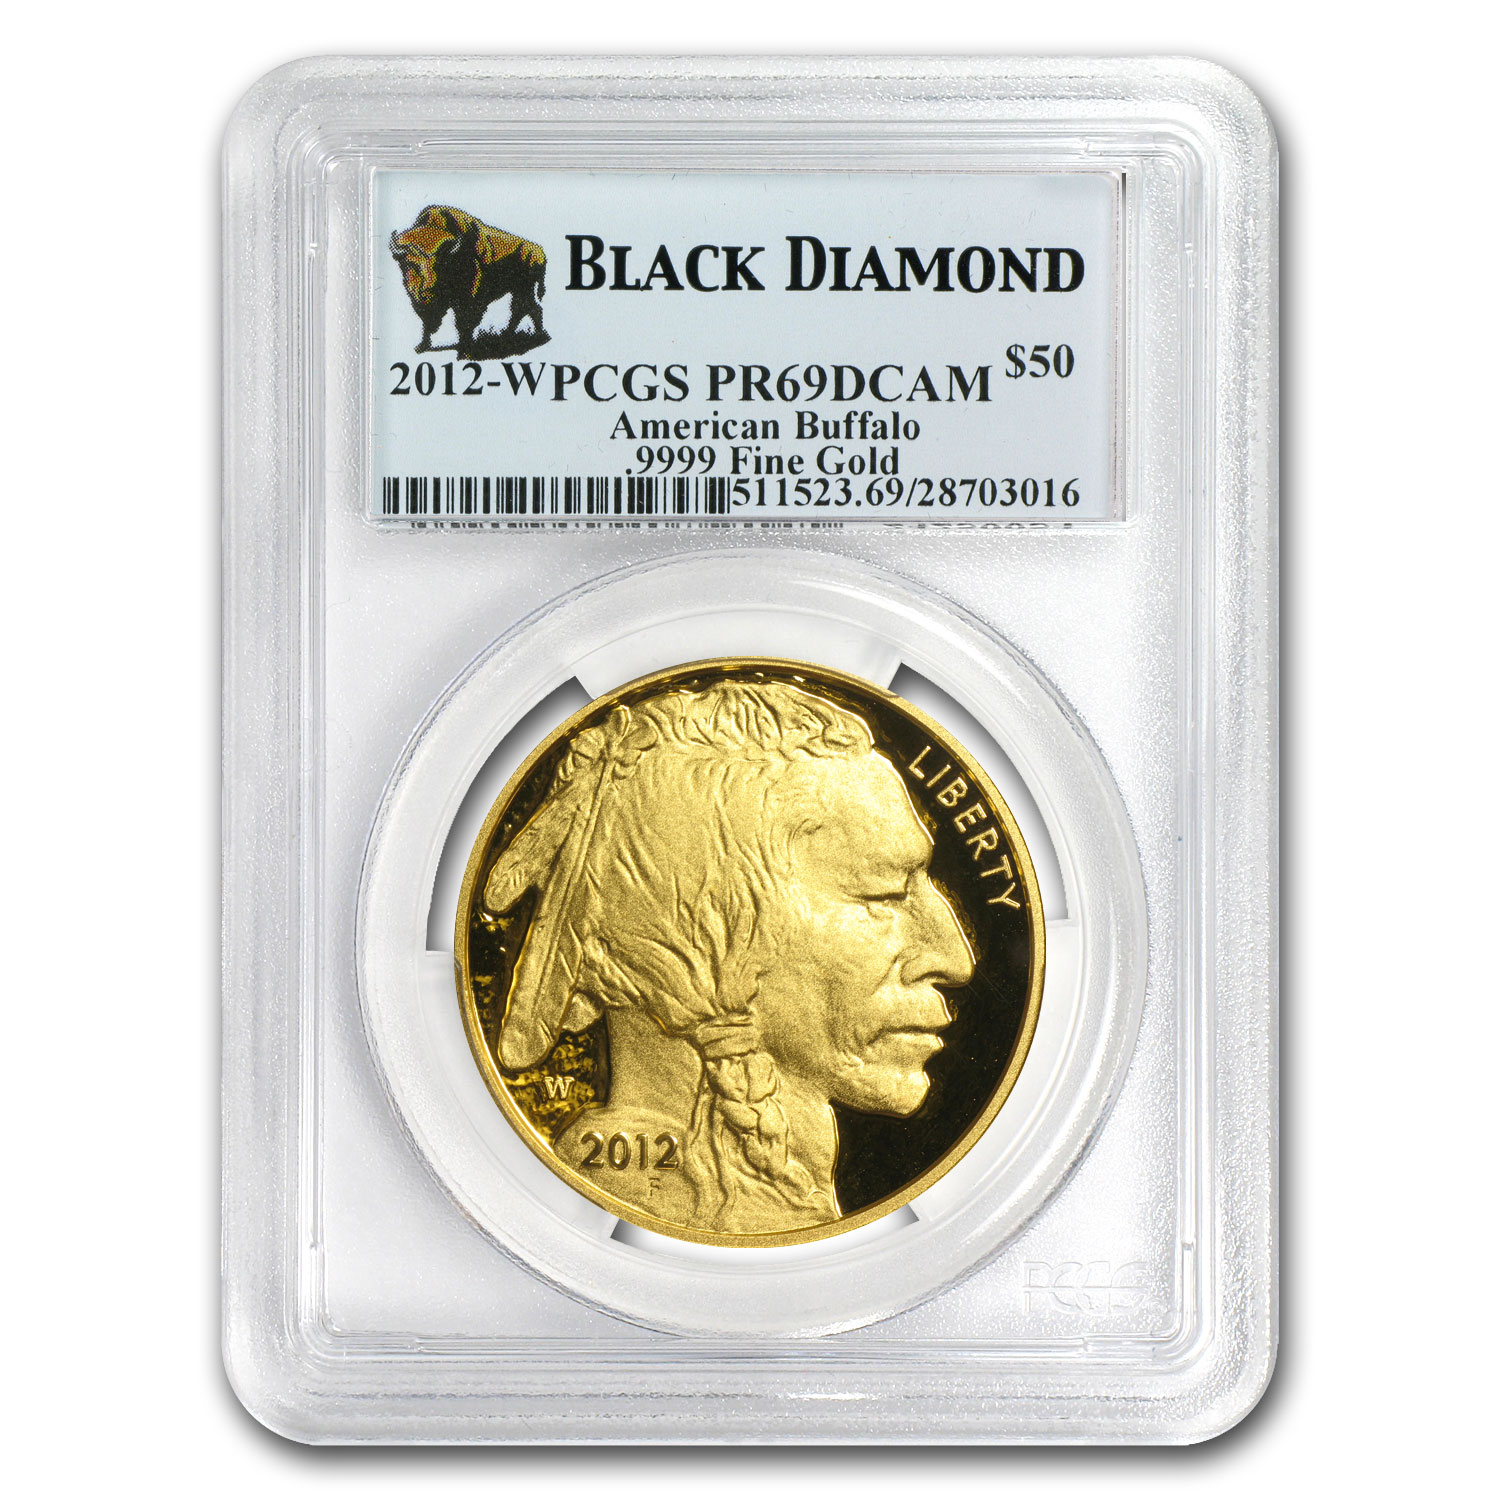 2006-2013 1 oz Gold Buffalo PR-69 PCGS Black Diamond 8-Coin Set